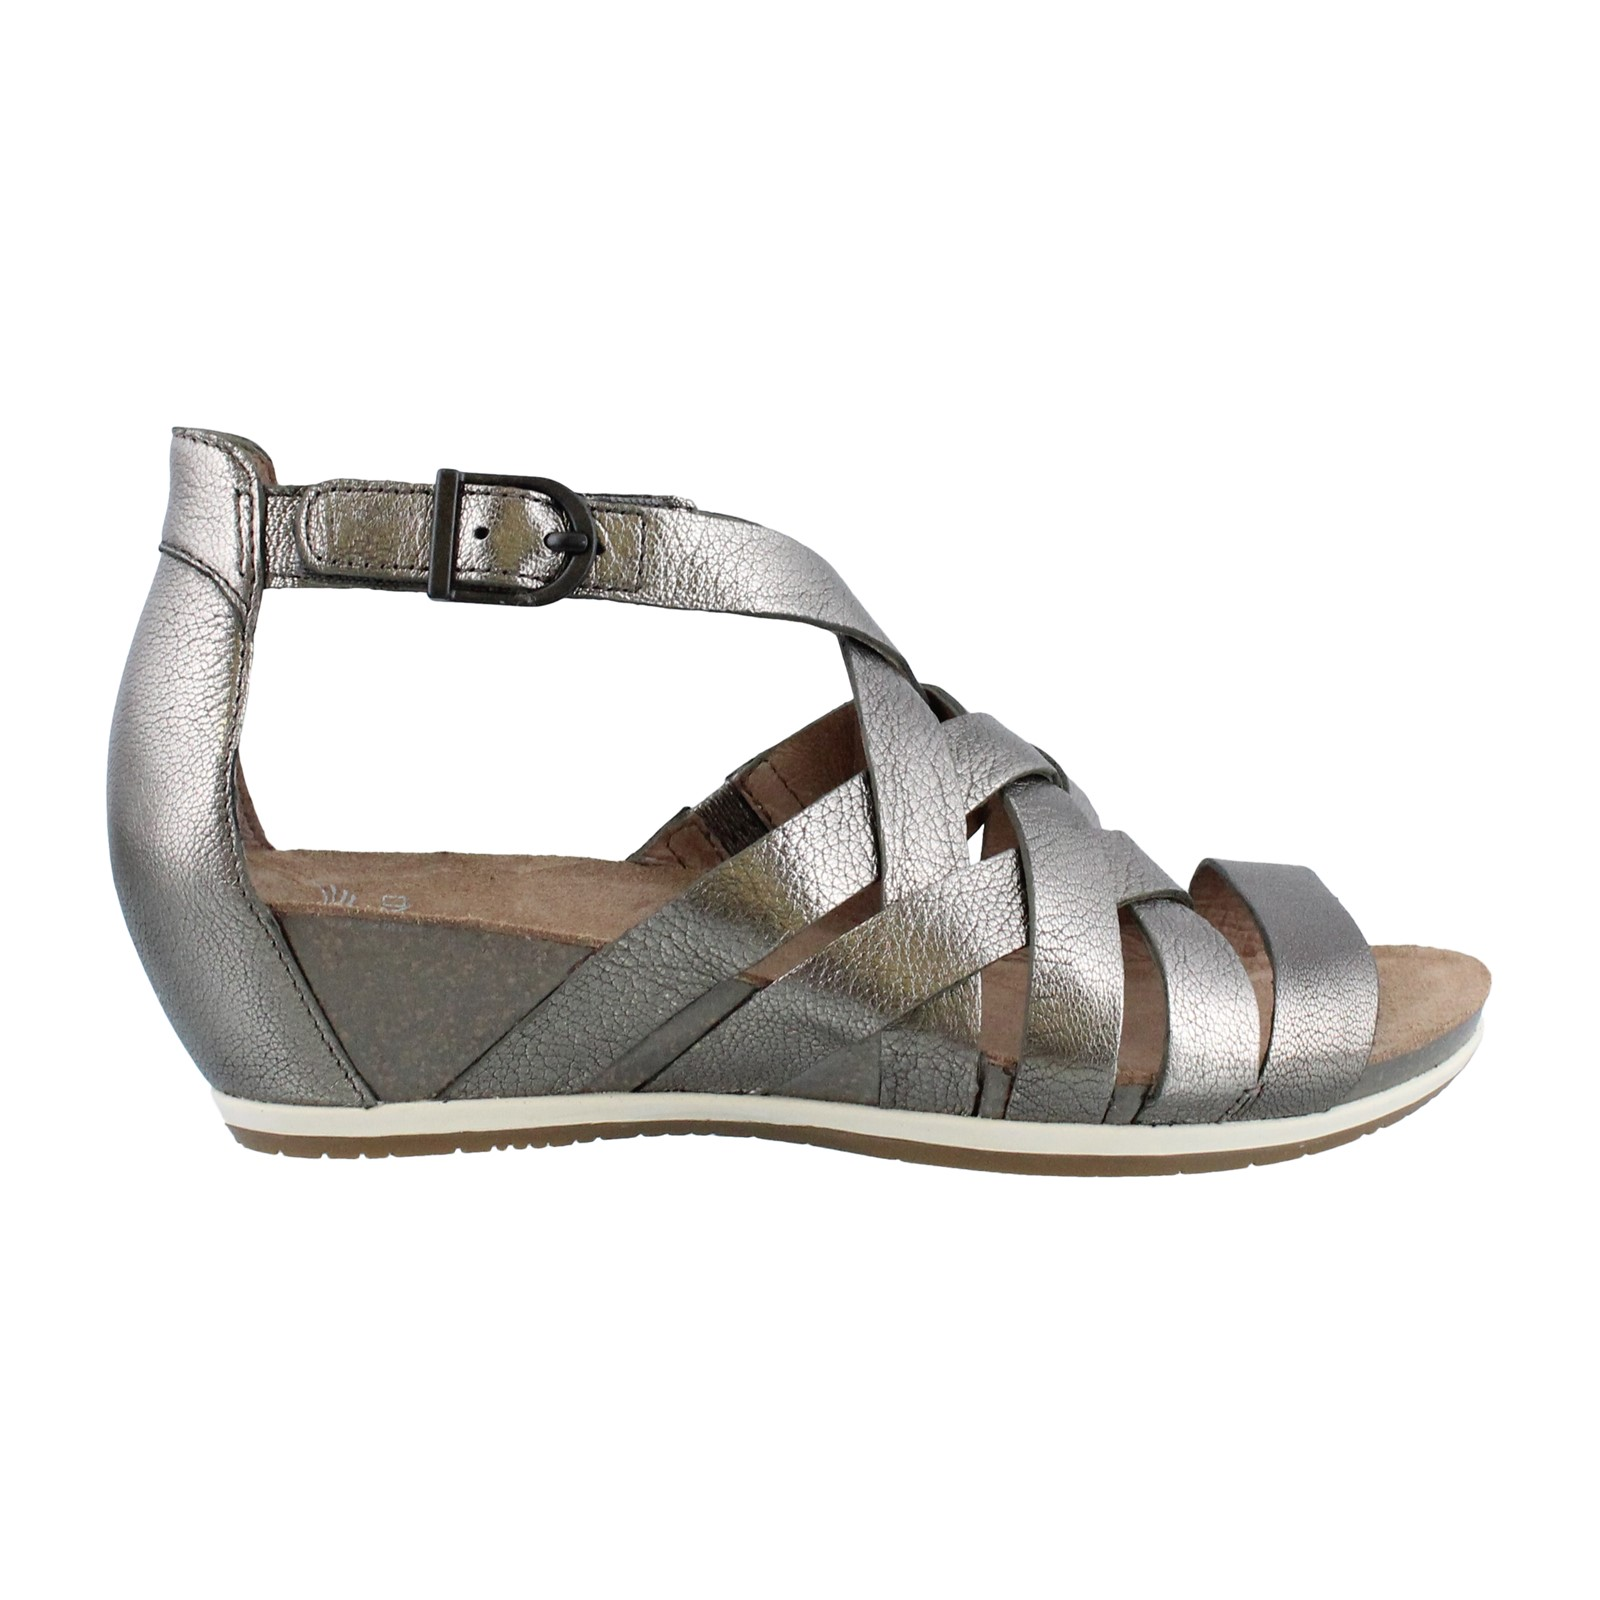 Women's Dansko, Vivian Mid Wedge Sandals